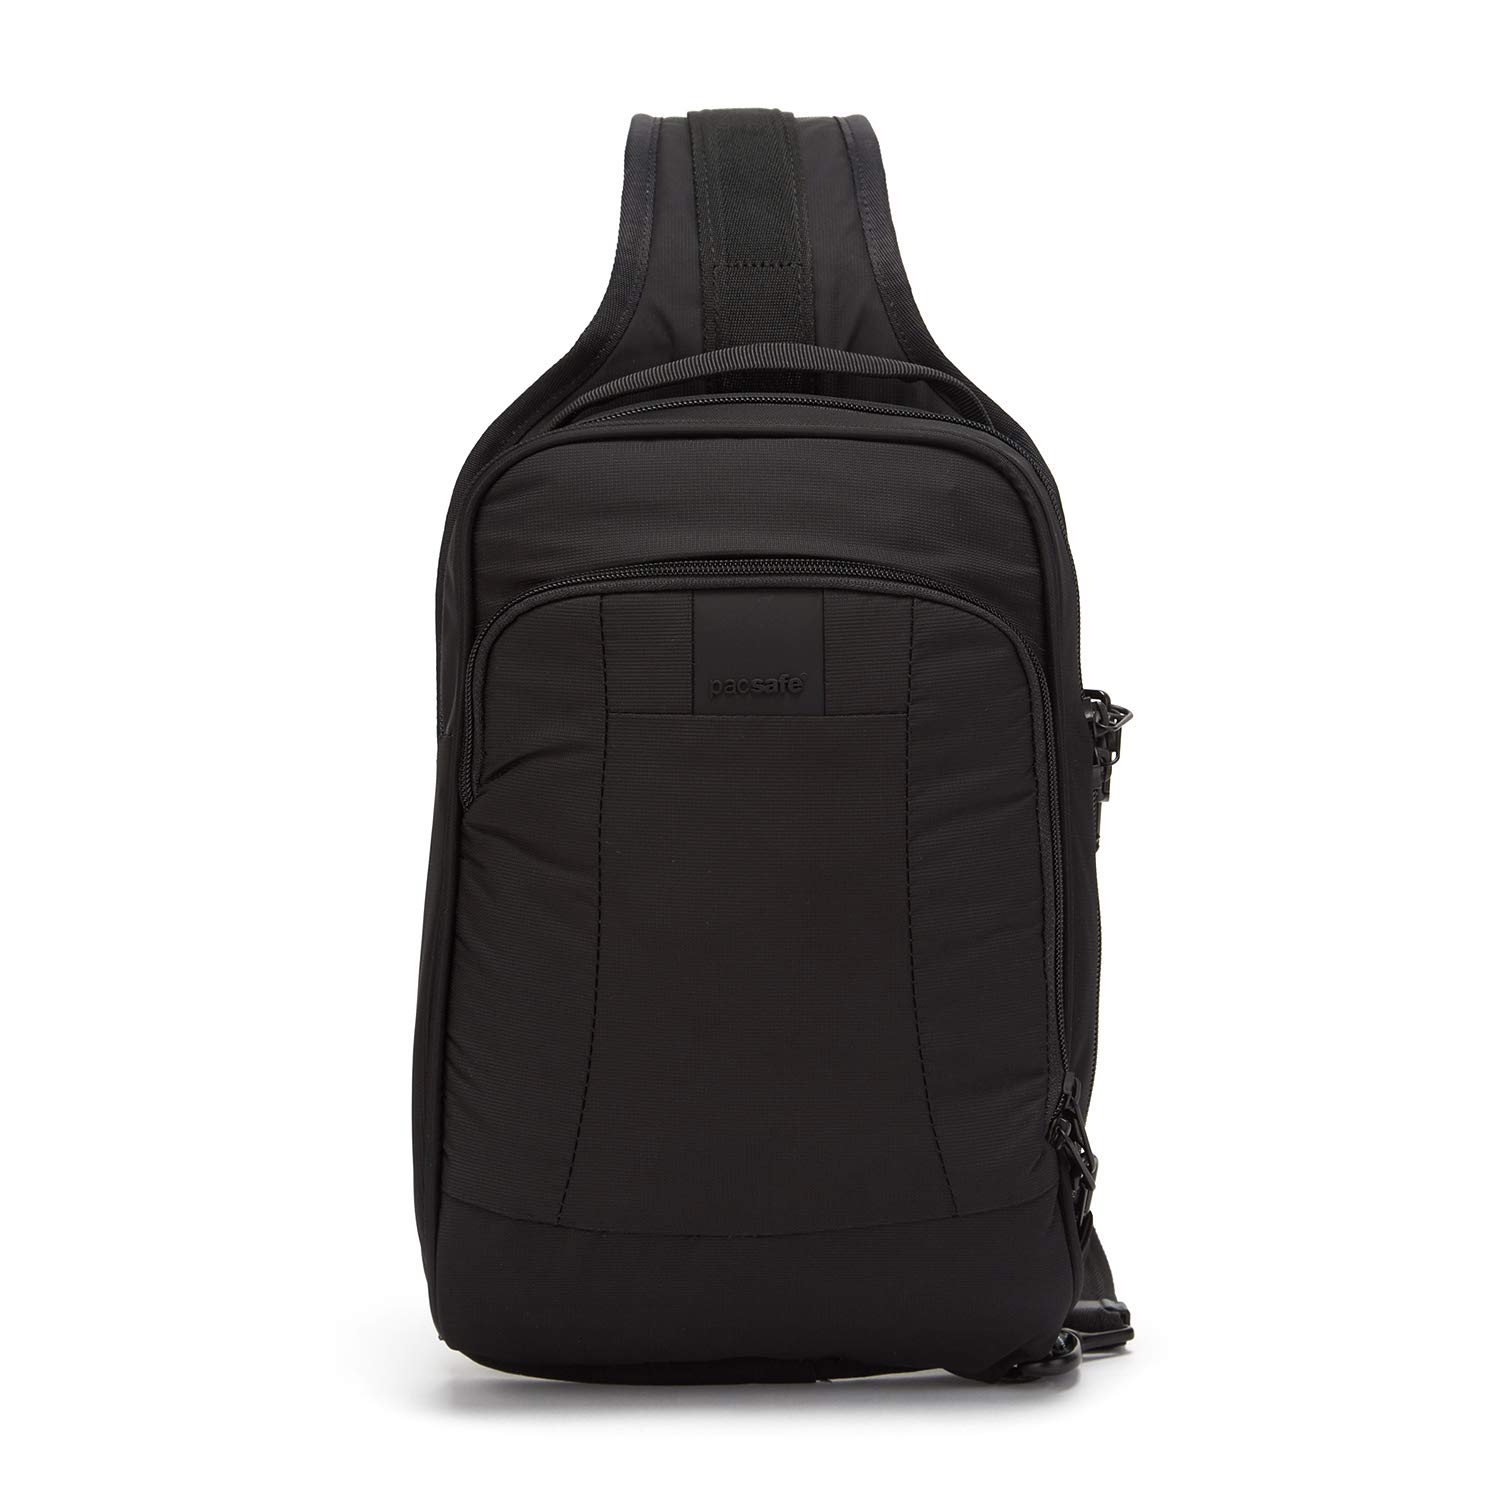 Pacsafe Metrosafe LS150 7 Liter Anti Theft Sling Backpack - Fits 7 inch Tablet with RFID Blocking Pocket and Lockable Zippers for Women & Men (Black)